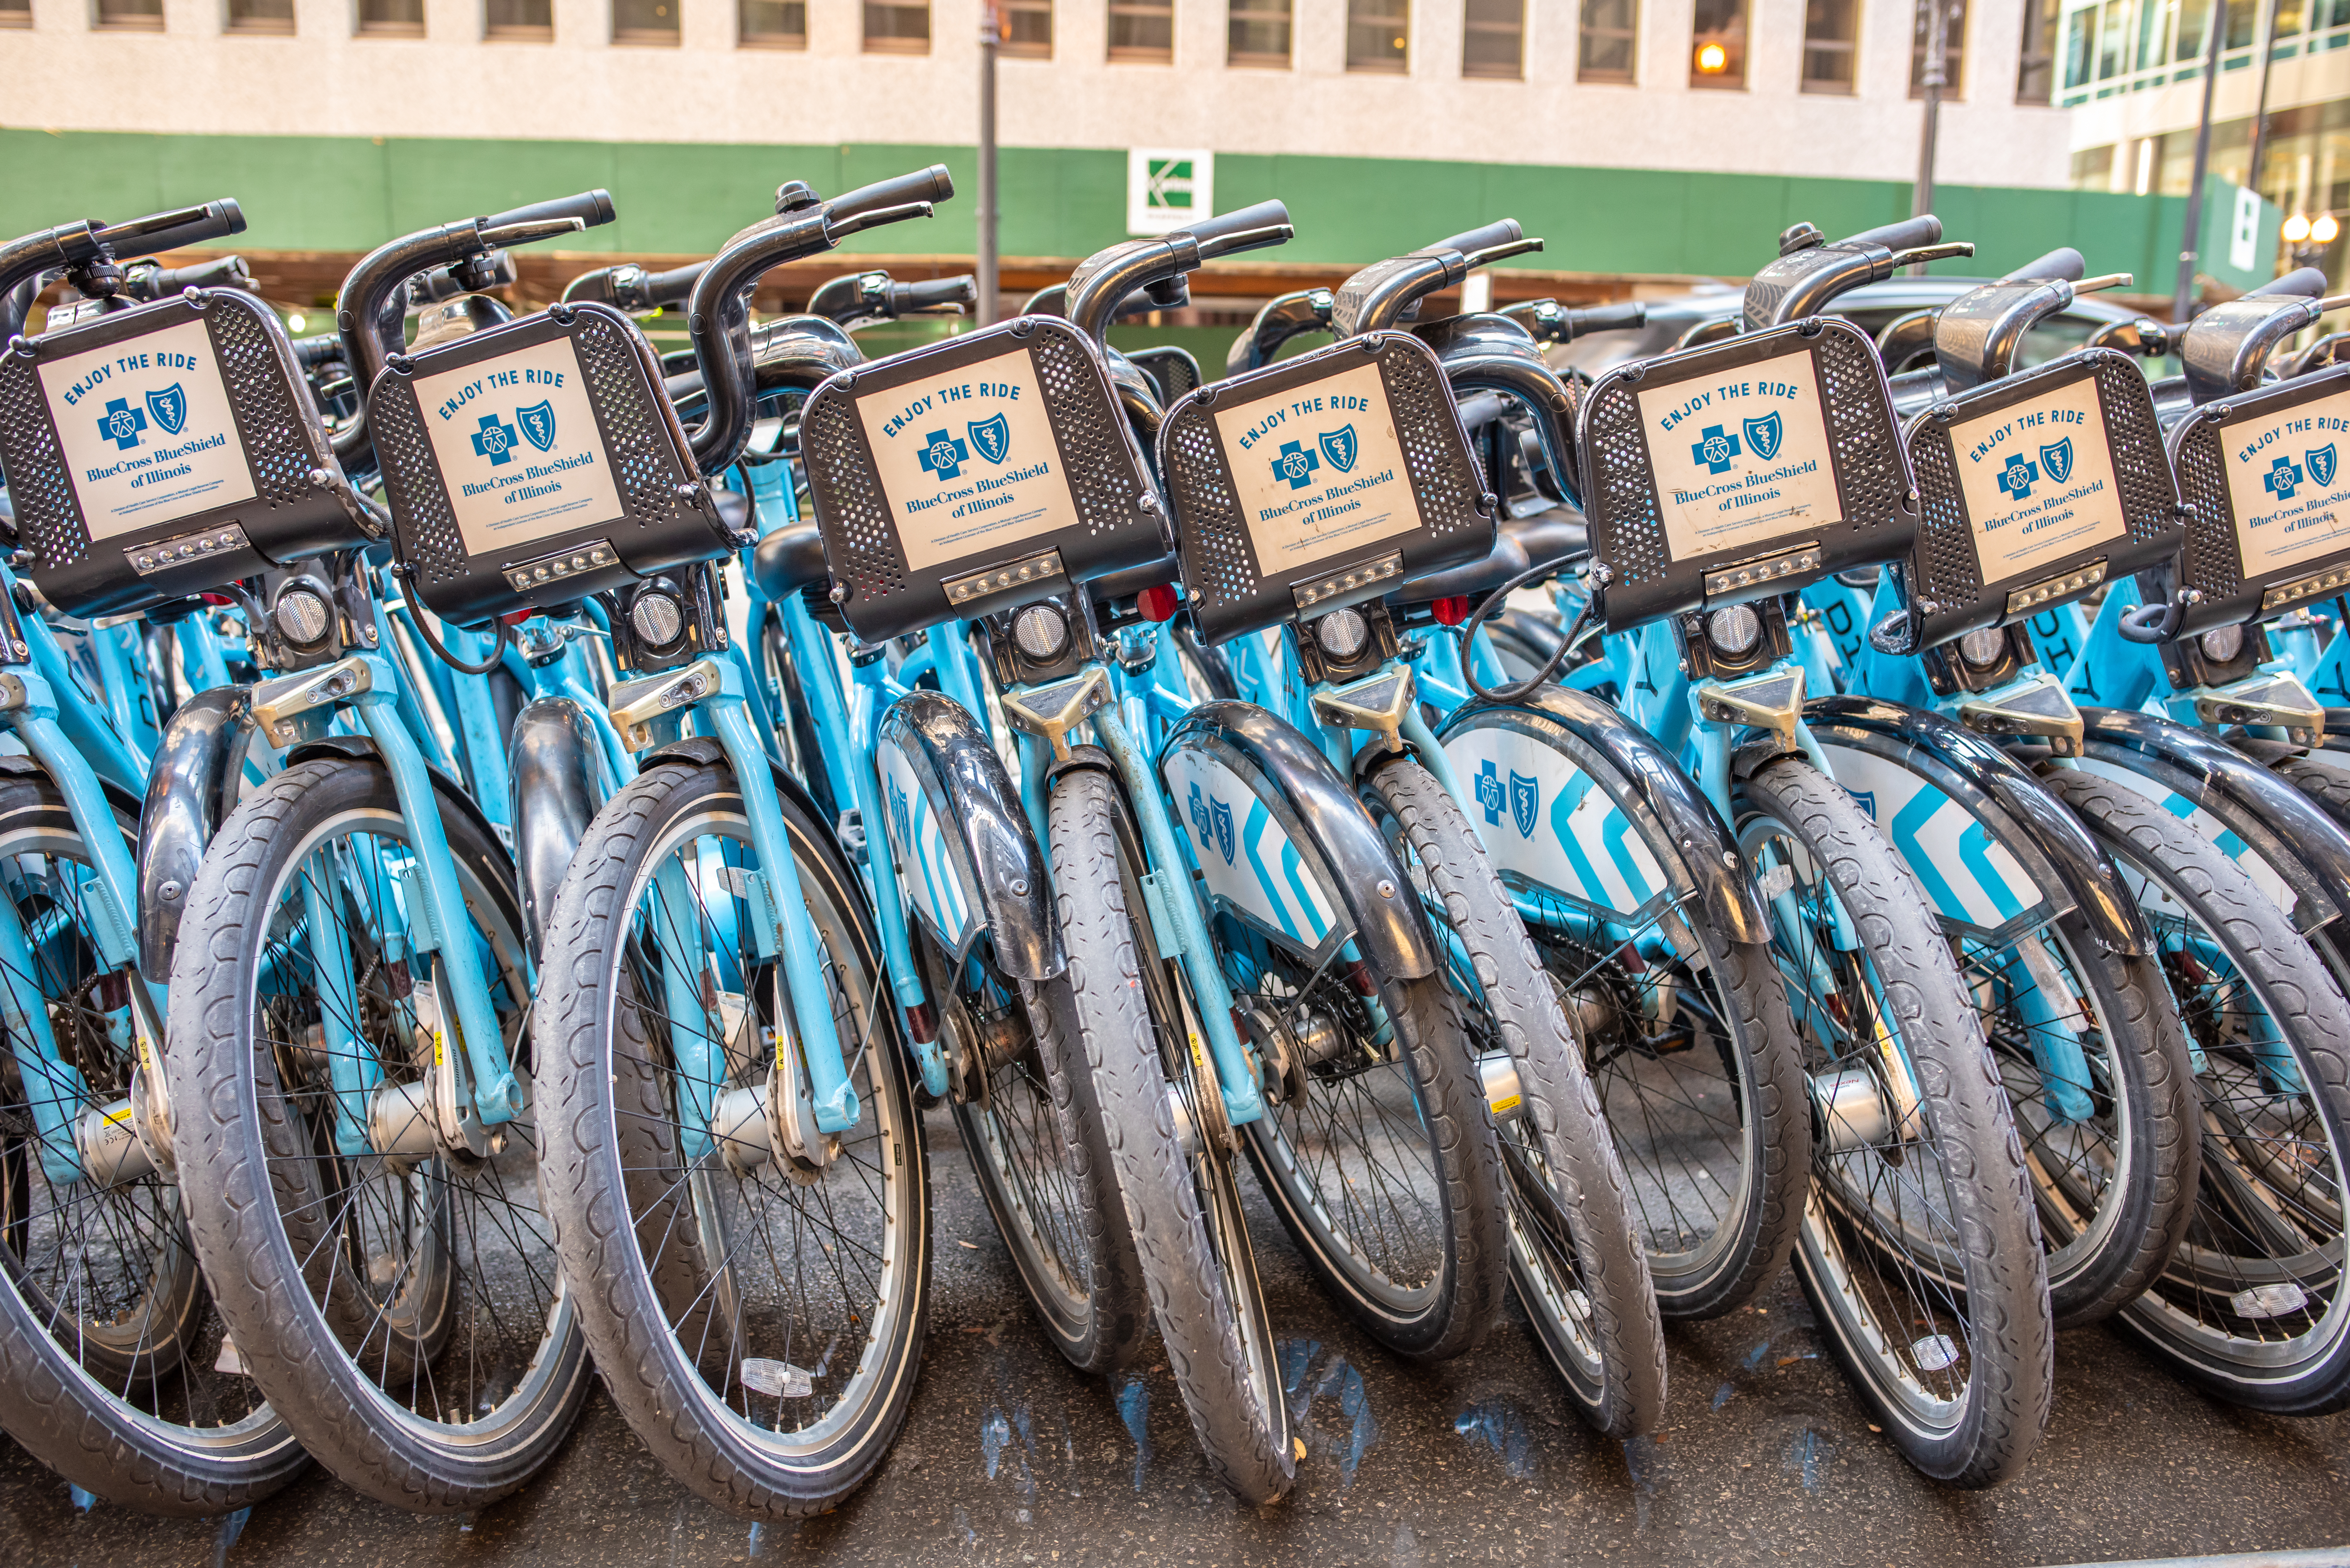 A front view of seven blue Divvy bikes with black mesh baskets and dirty tires.